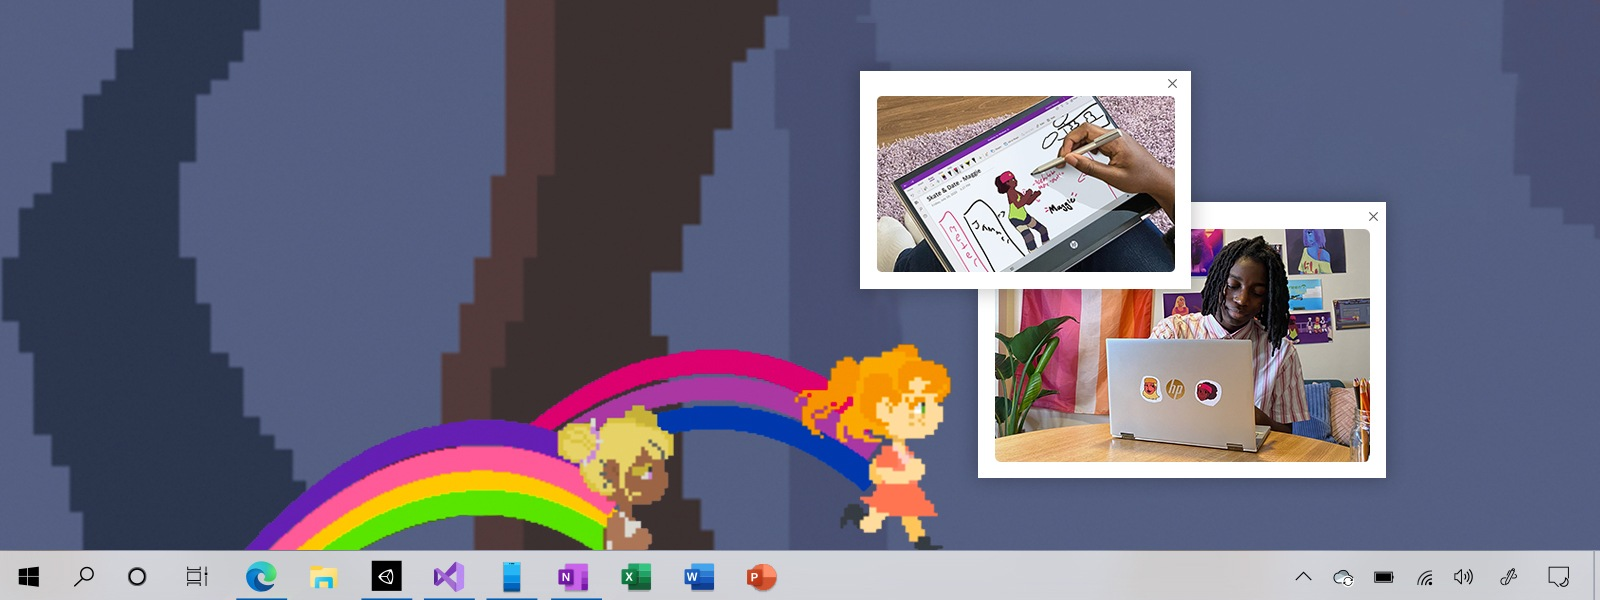 Geneva's game in the background, with stickies of them working with the Pen and on their laptop